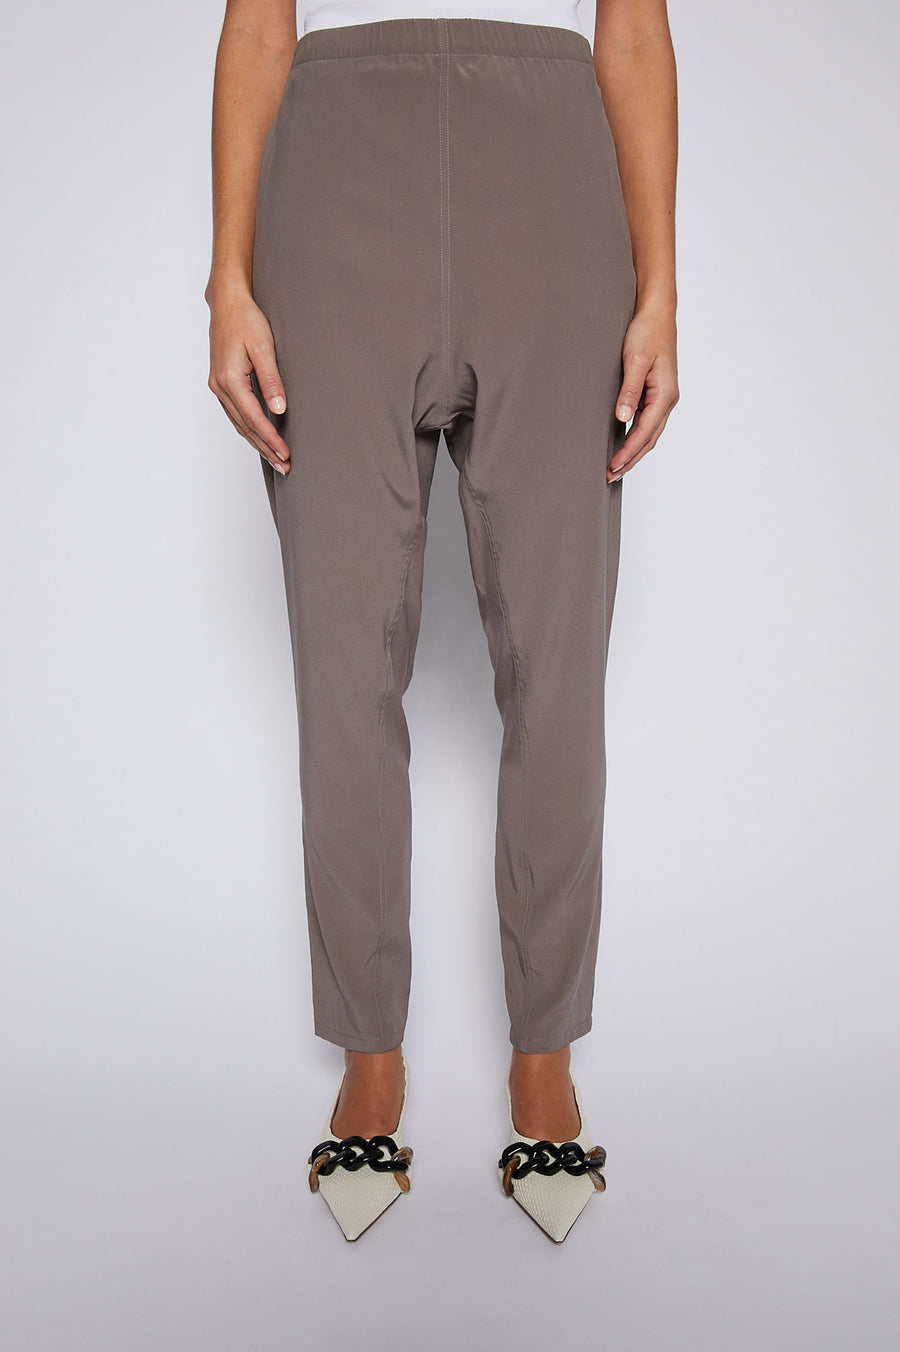 The Silk Low Rise Boyfriend Pant is a relaxed fit with an encased elastic waist